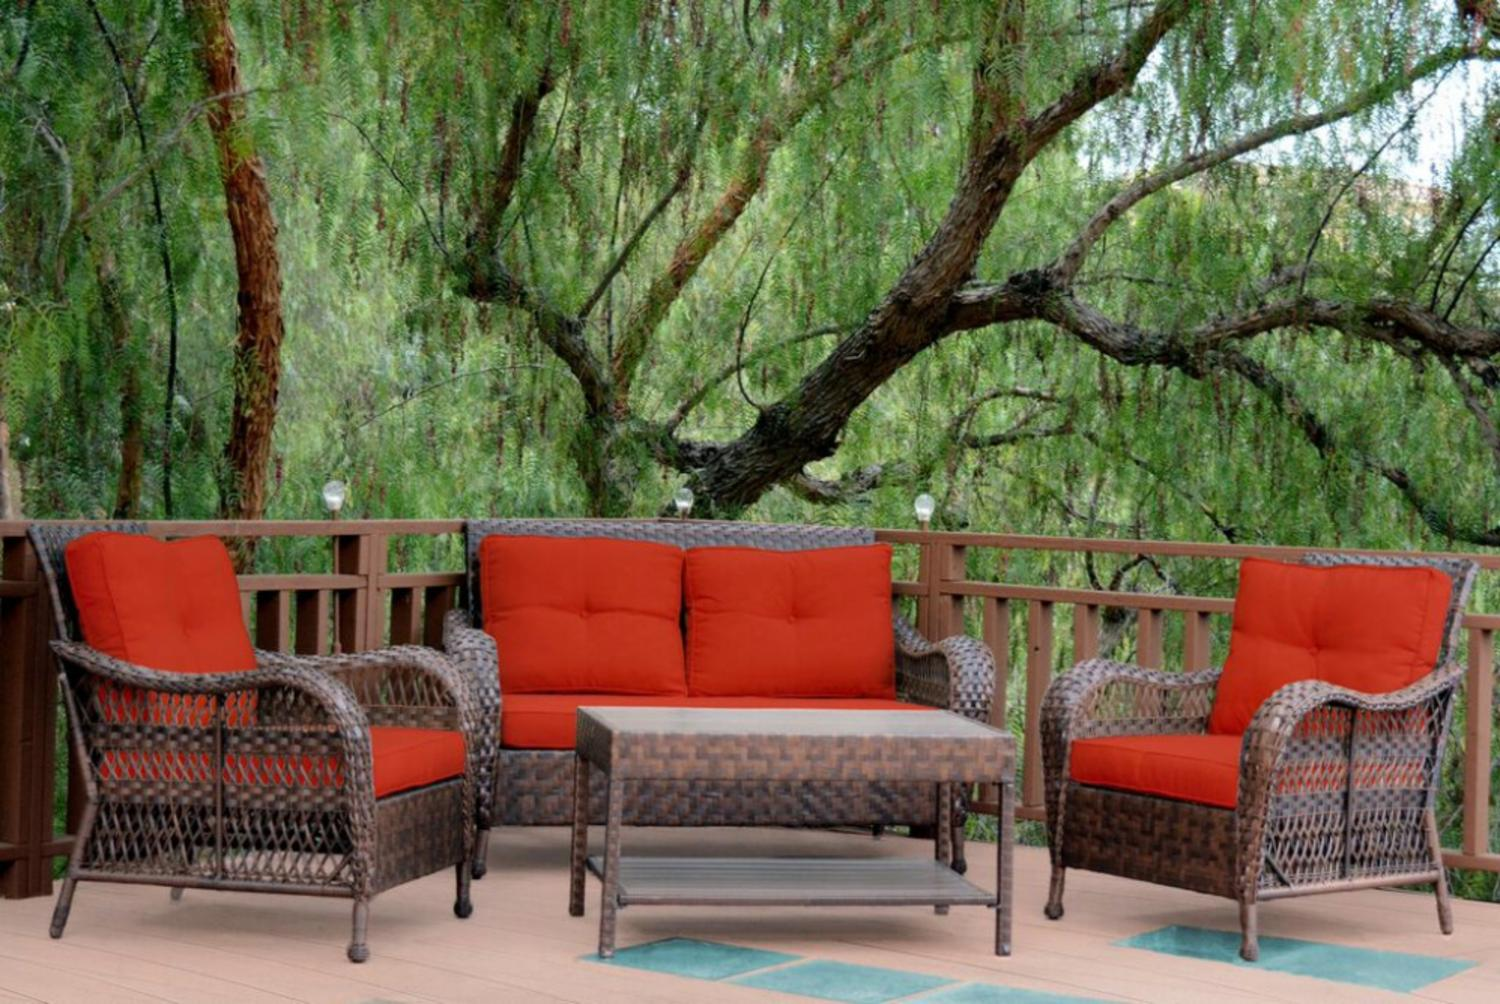 Marvelous 4 Piece Espresso Resin Wicker Outdoor Patio Conversation Furniture Set    Red Cushions